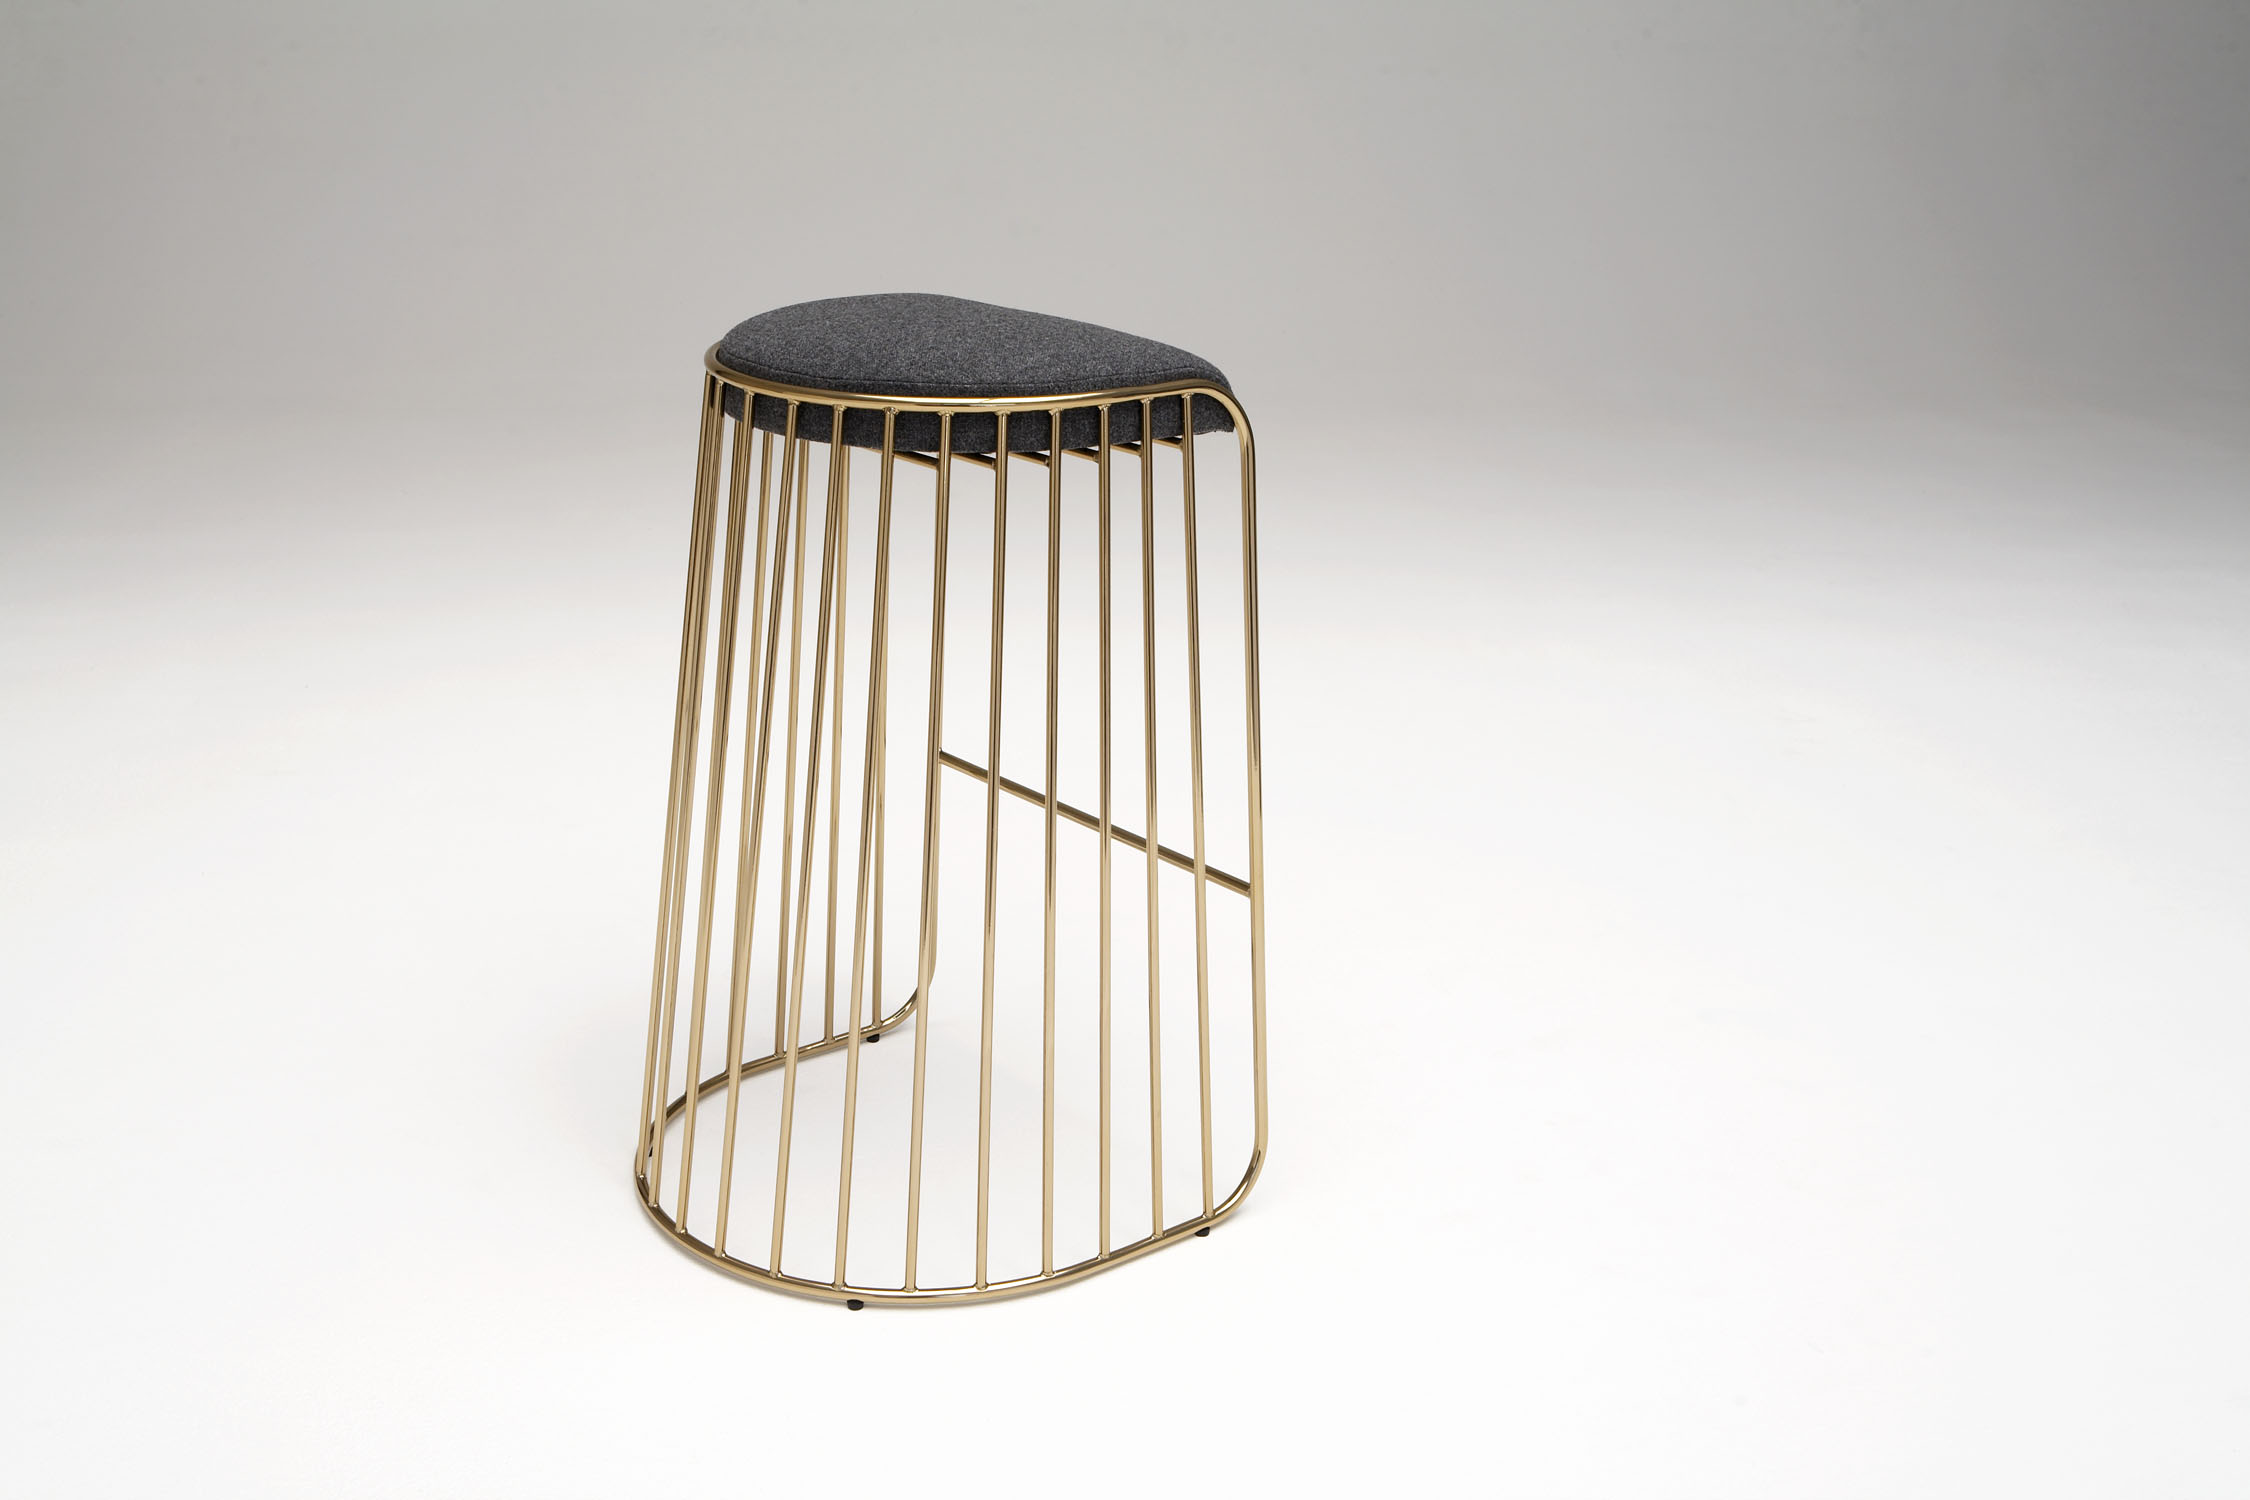 Bride s Veil Bar Stool by Phase Design